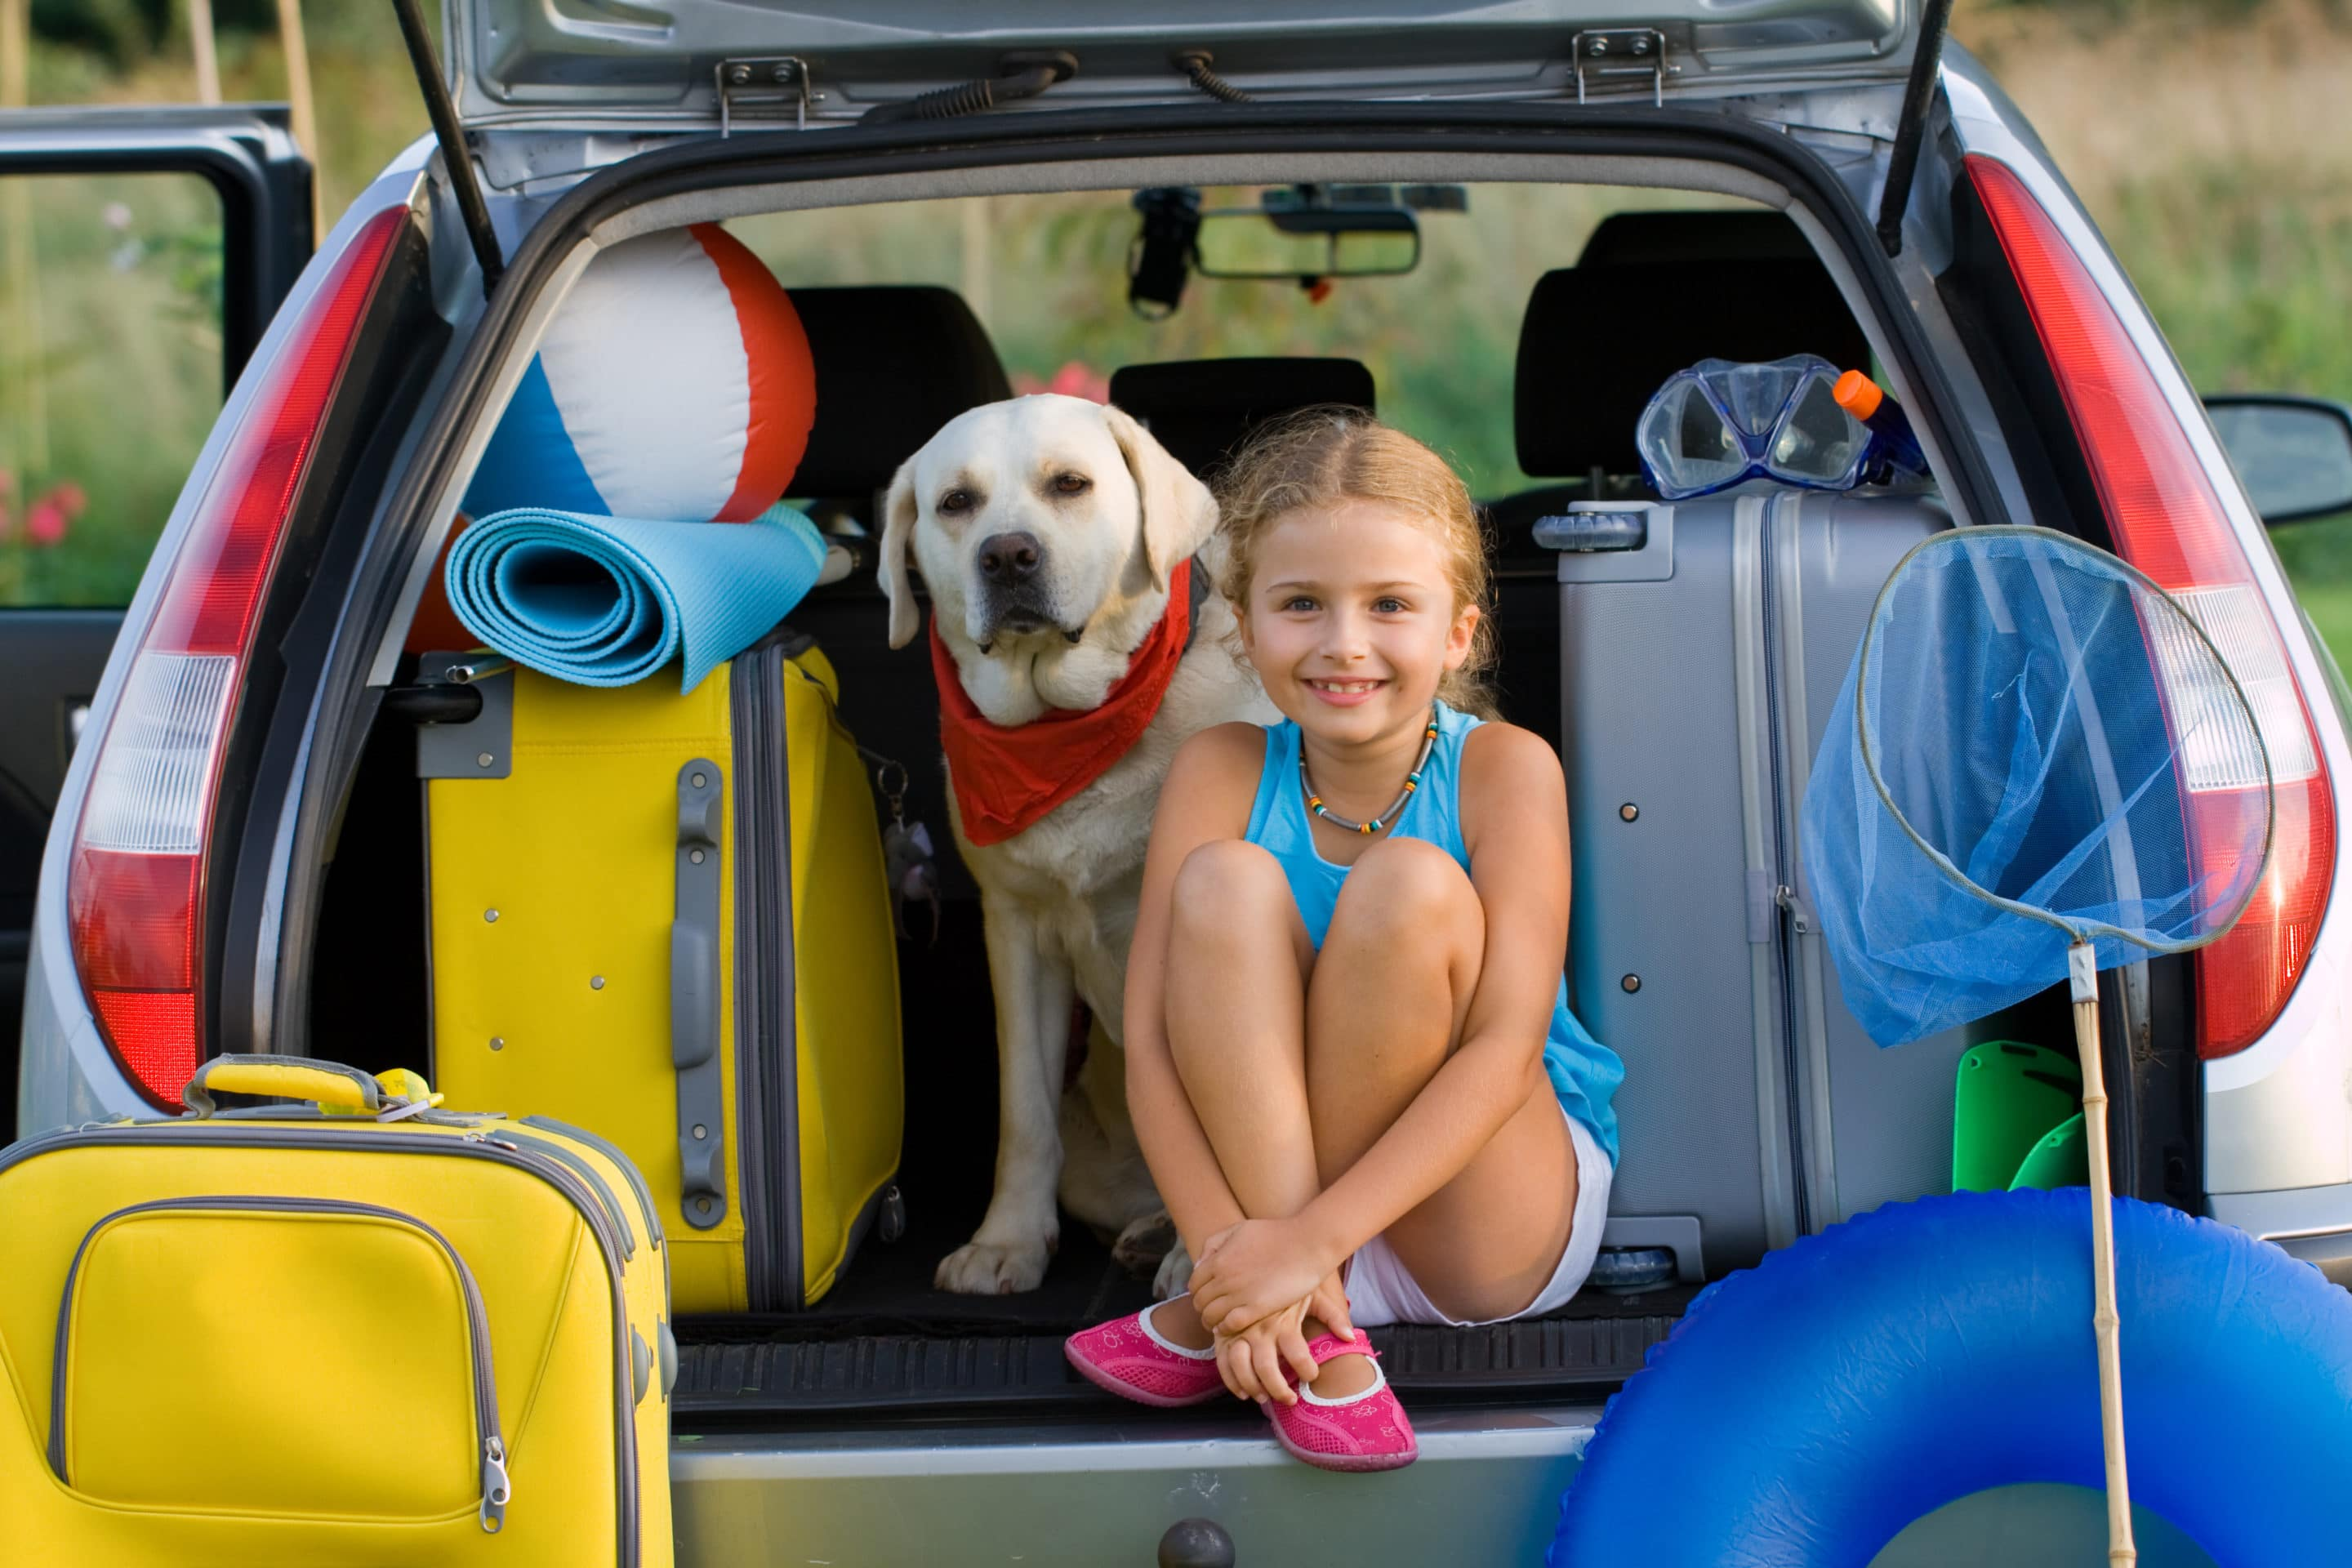 HOLIDAYING WITH YOUR PET